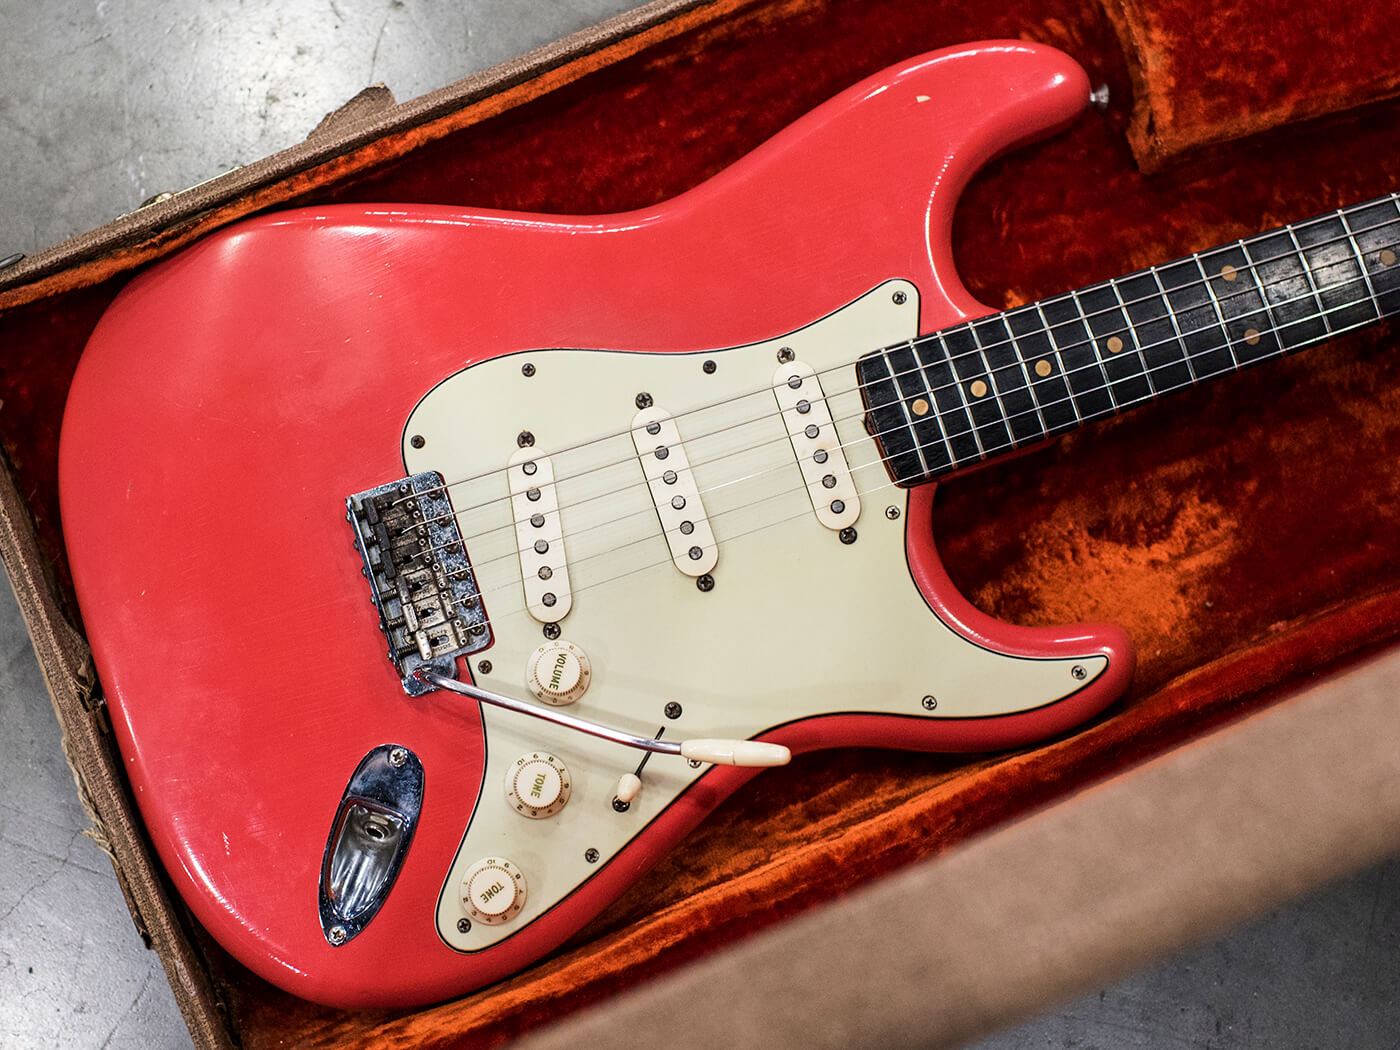 1962 Stratocaster in Fiesta Red